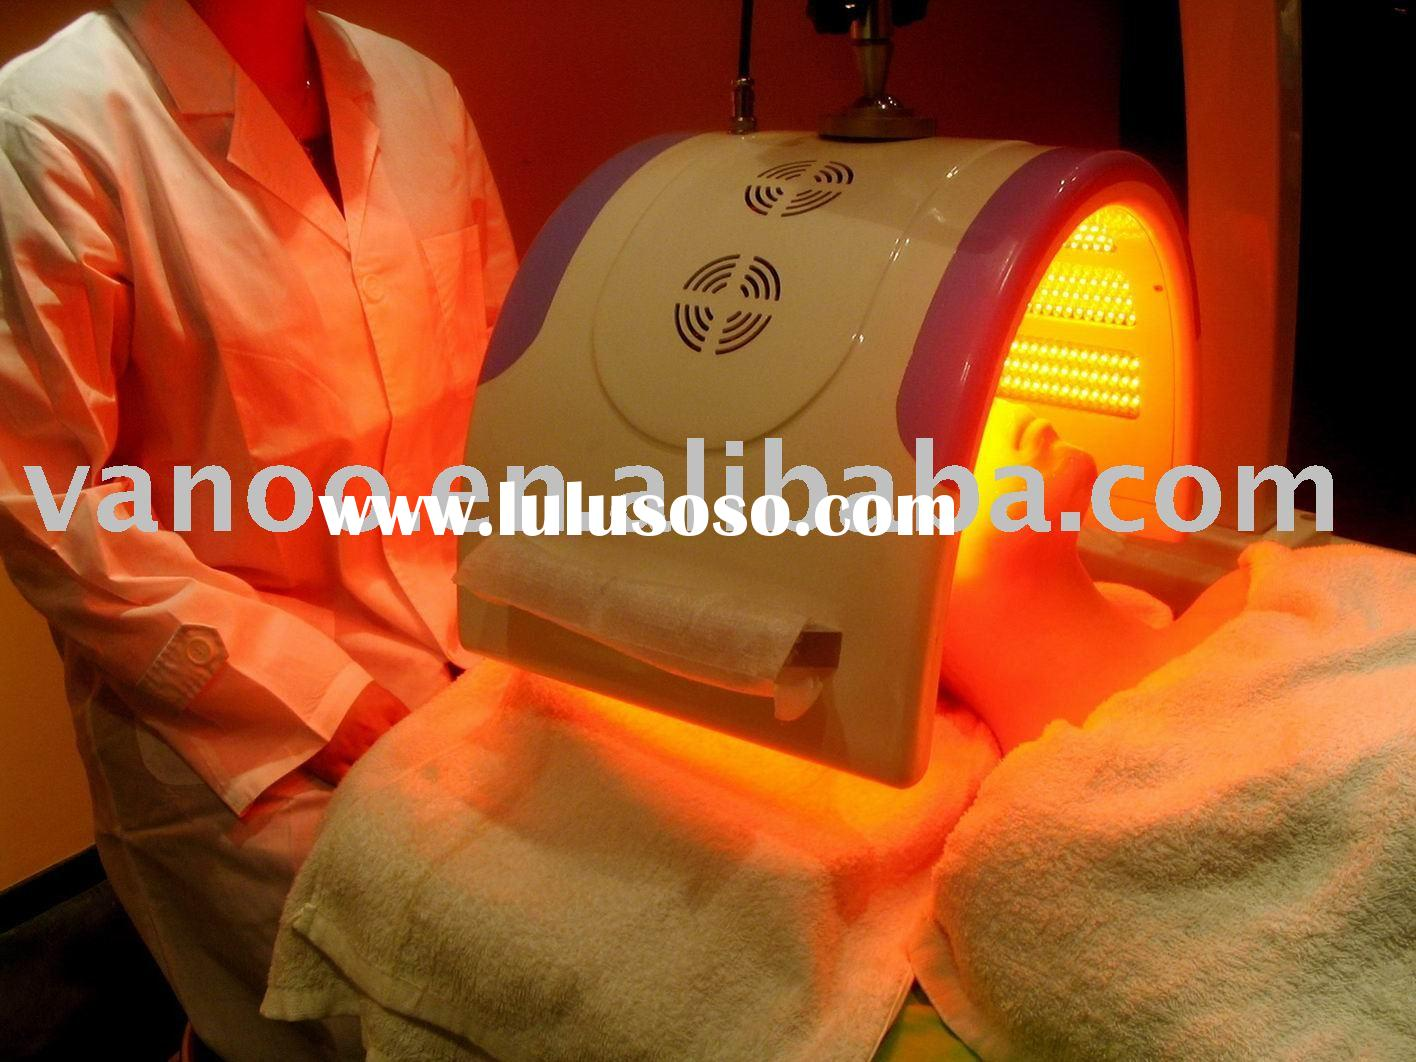 LED Light Therapy for BEAUTY SALON